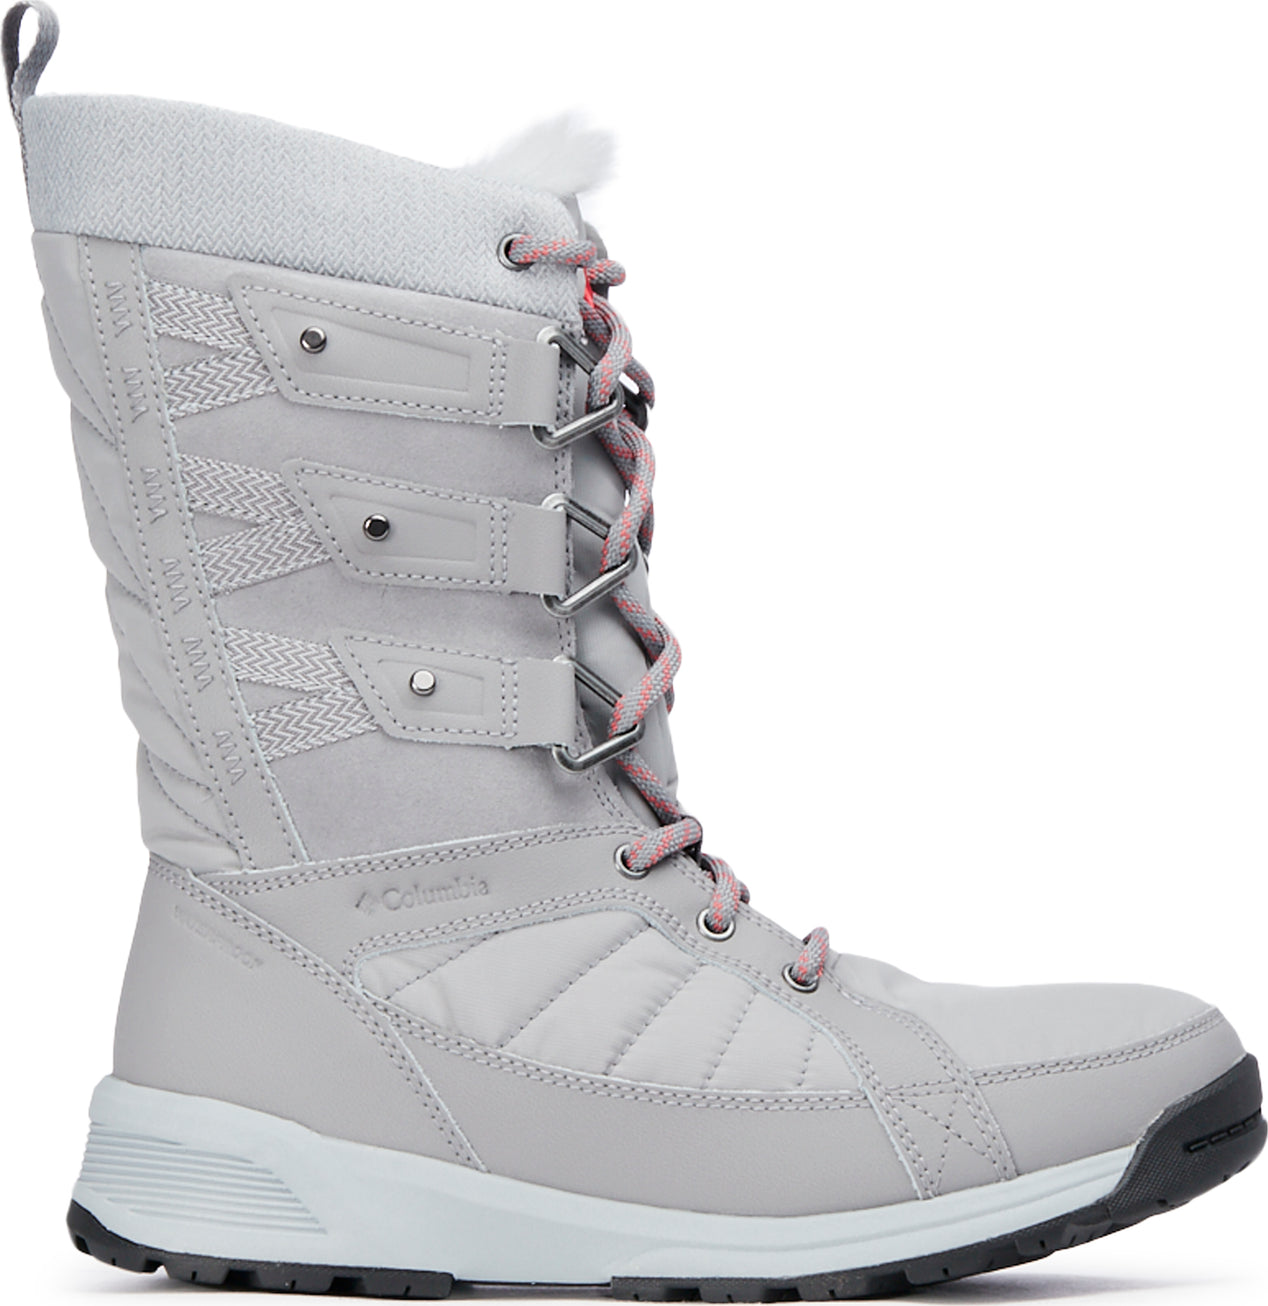 453fd12d488 ... Bottes Meadows Omni-Heat 3D - Femme Monument - Sunset Red ...